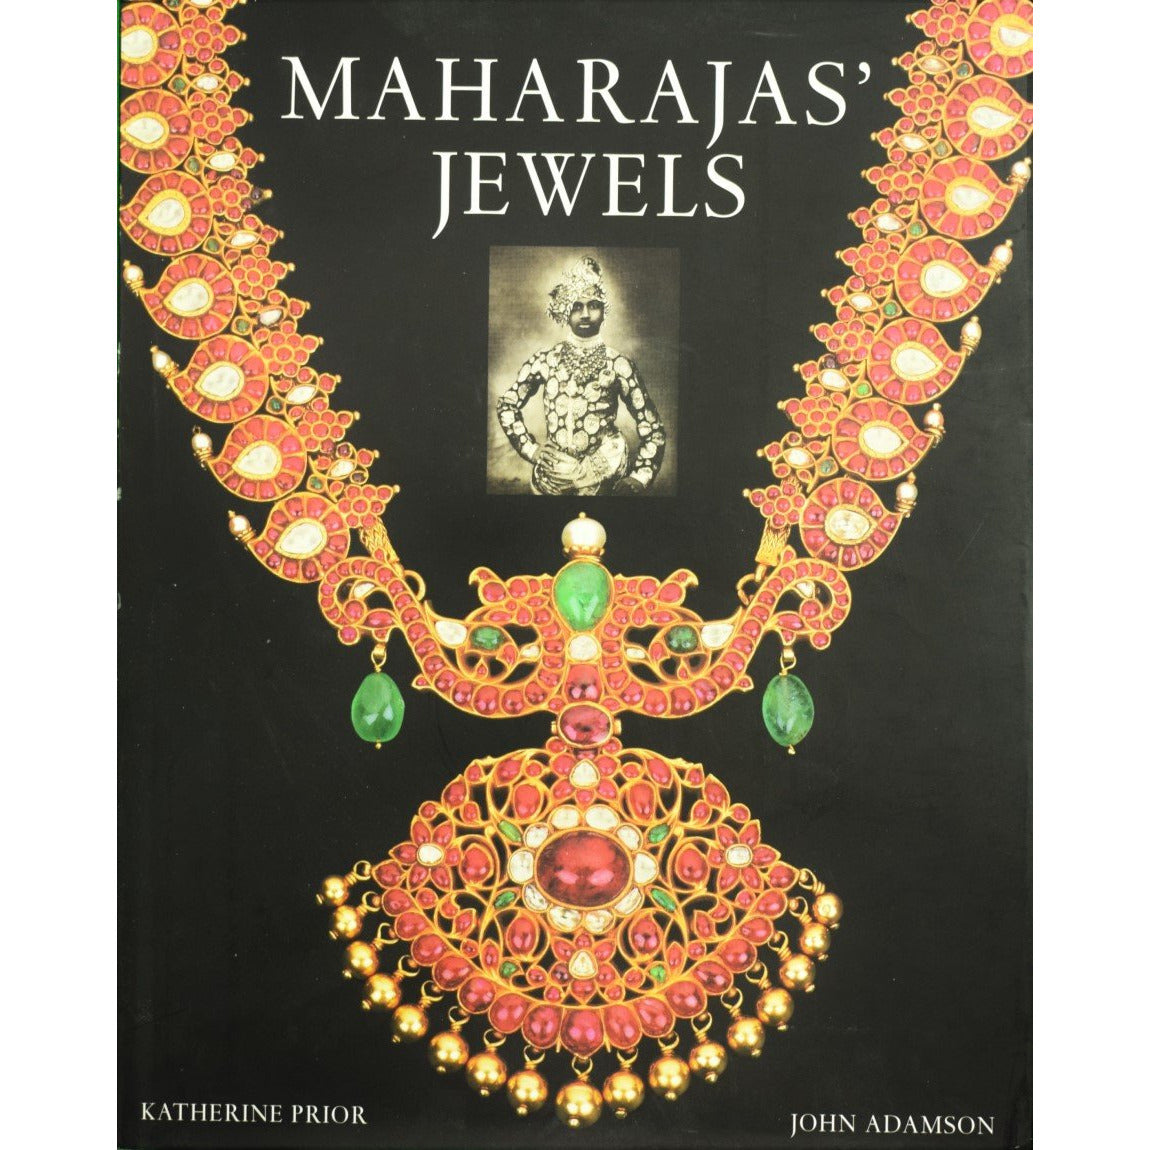 Maharajas' Jewels